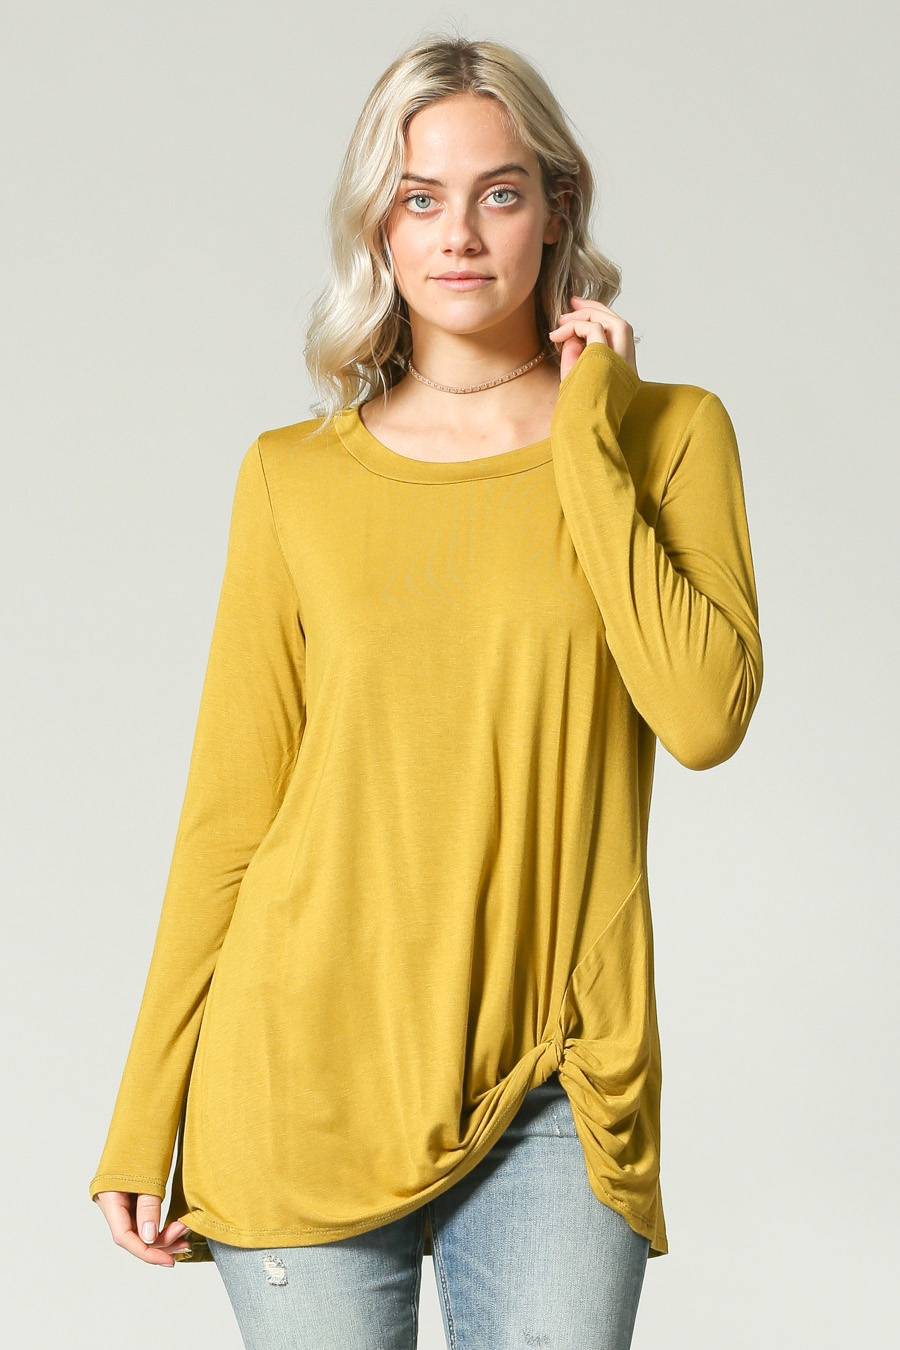 LOOSE FIT LONG SLEEVES LONG TUNIC - orangeshine.com